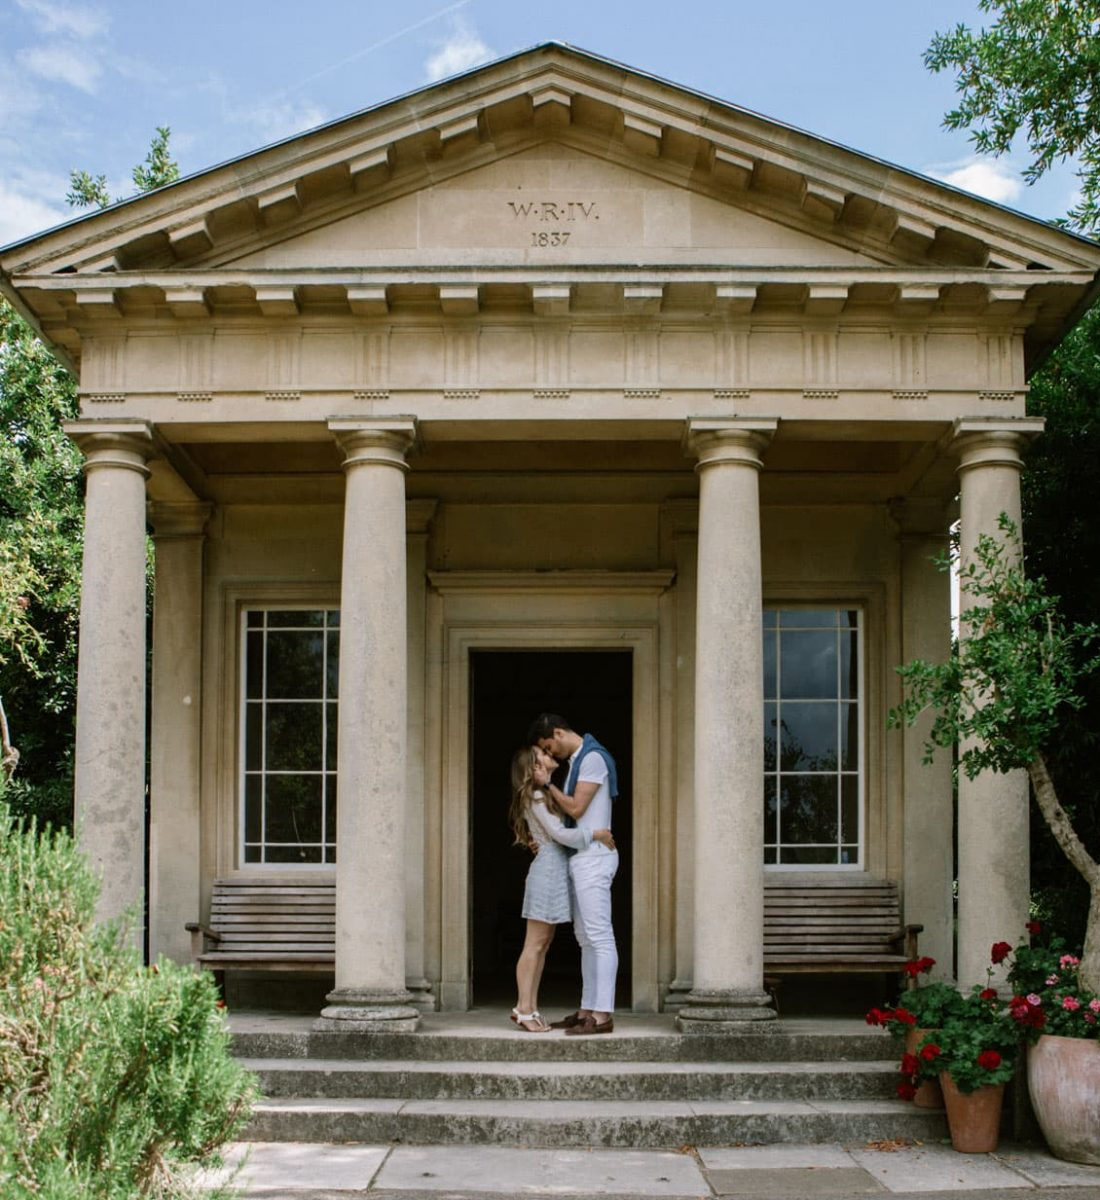 Kaleidos Wedding | Elopement in London, Kew Gardens